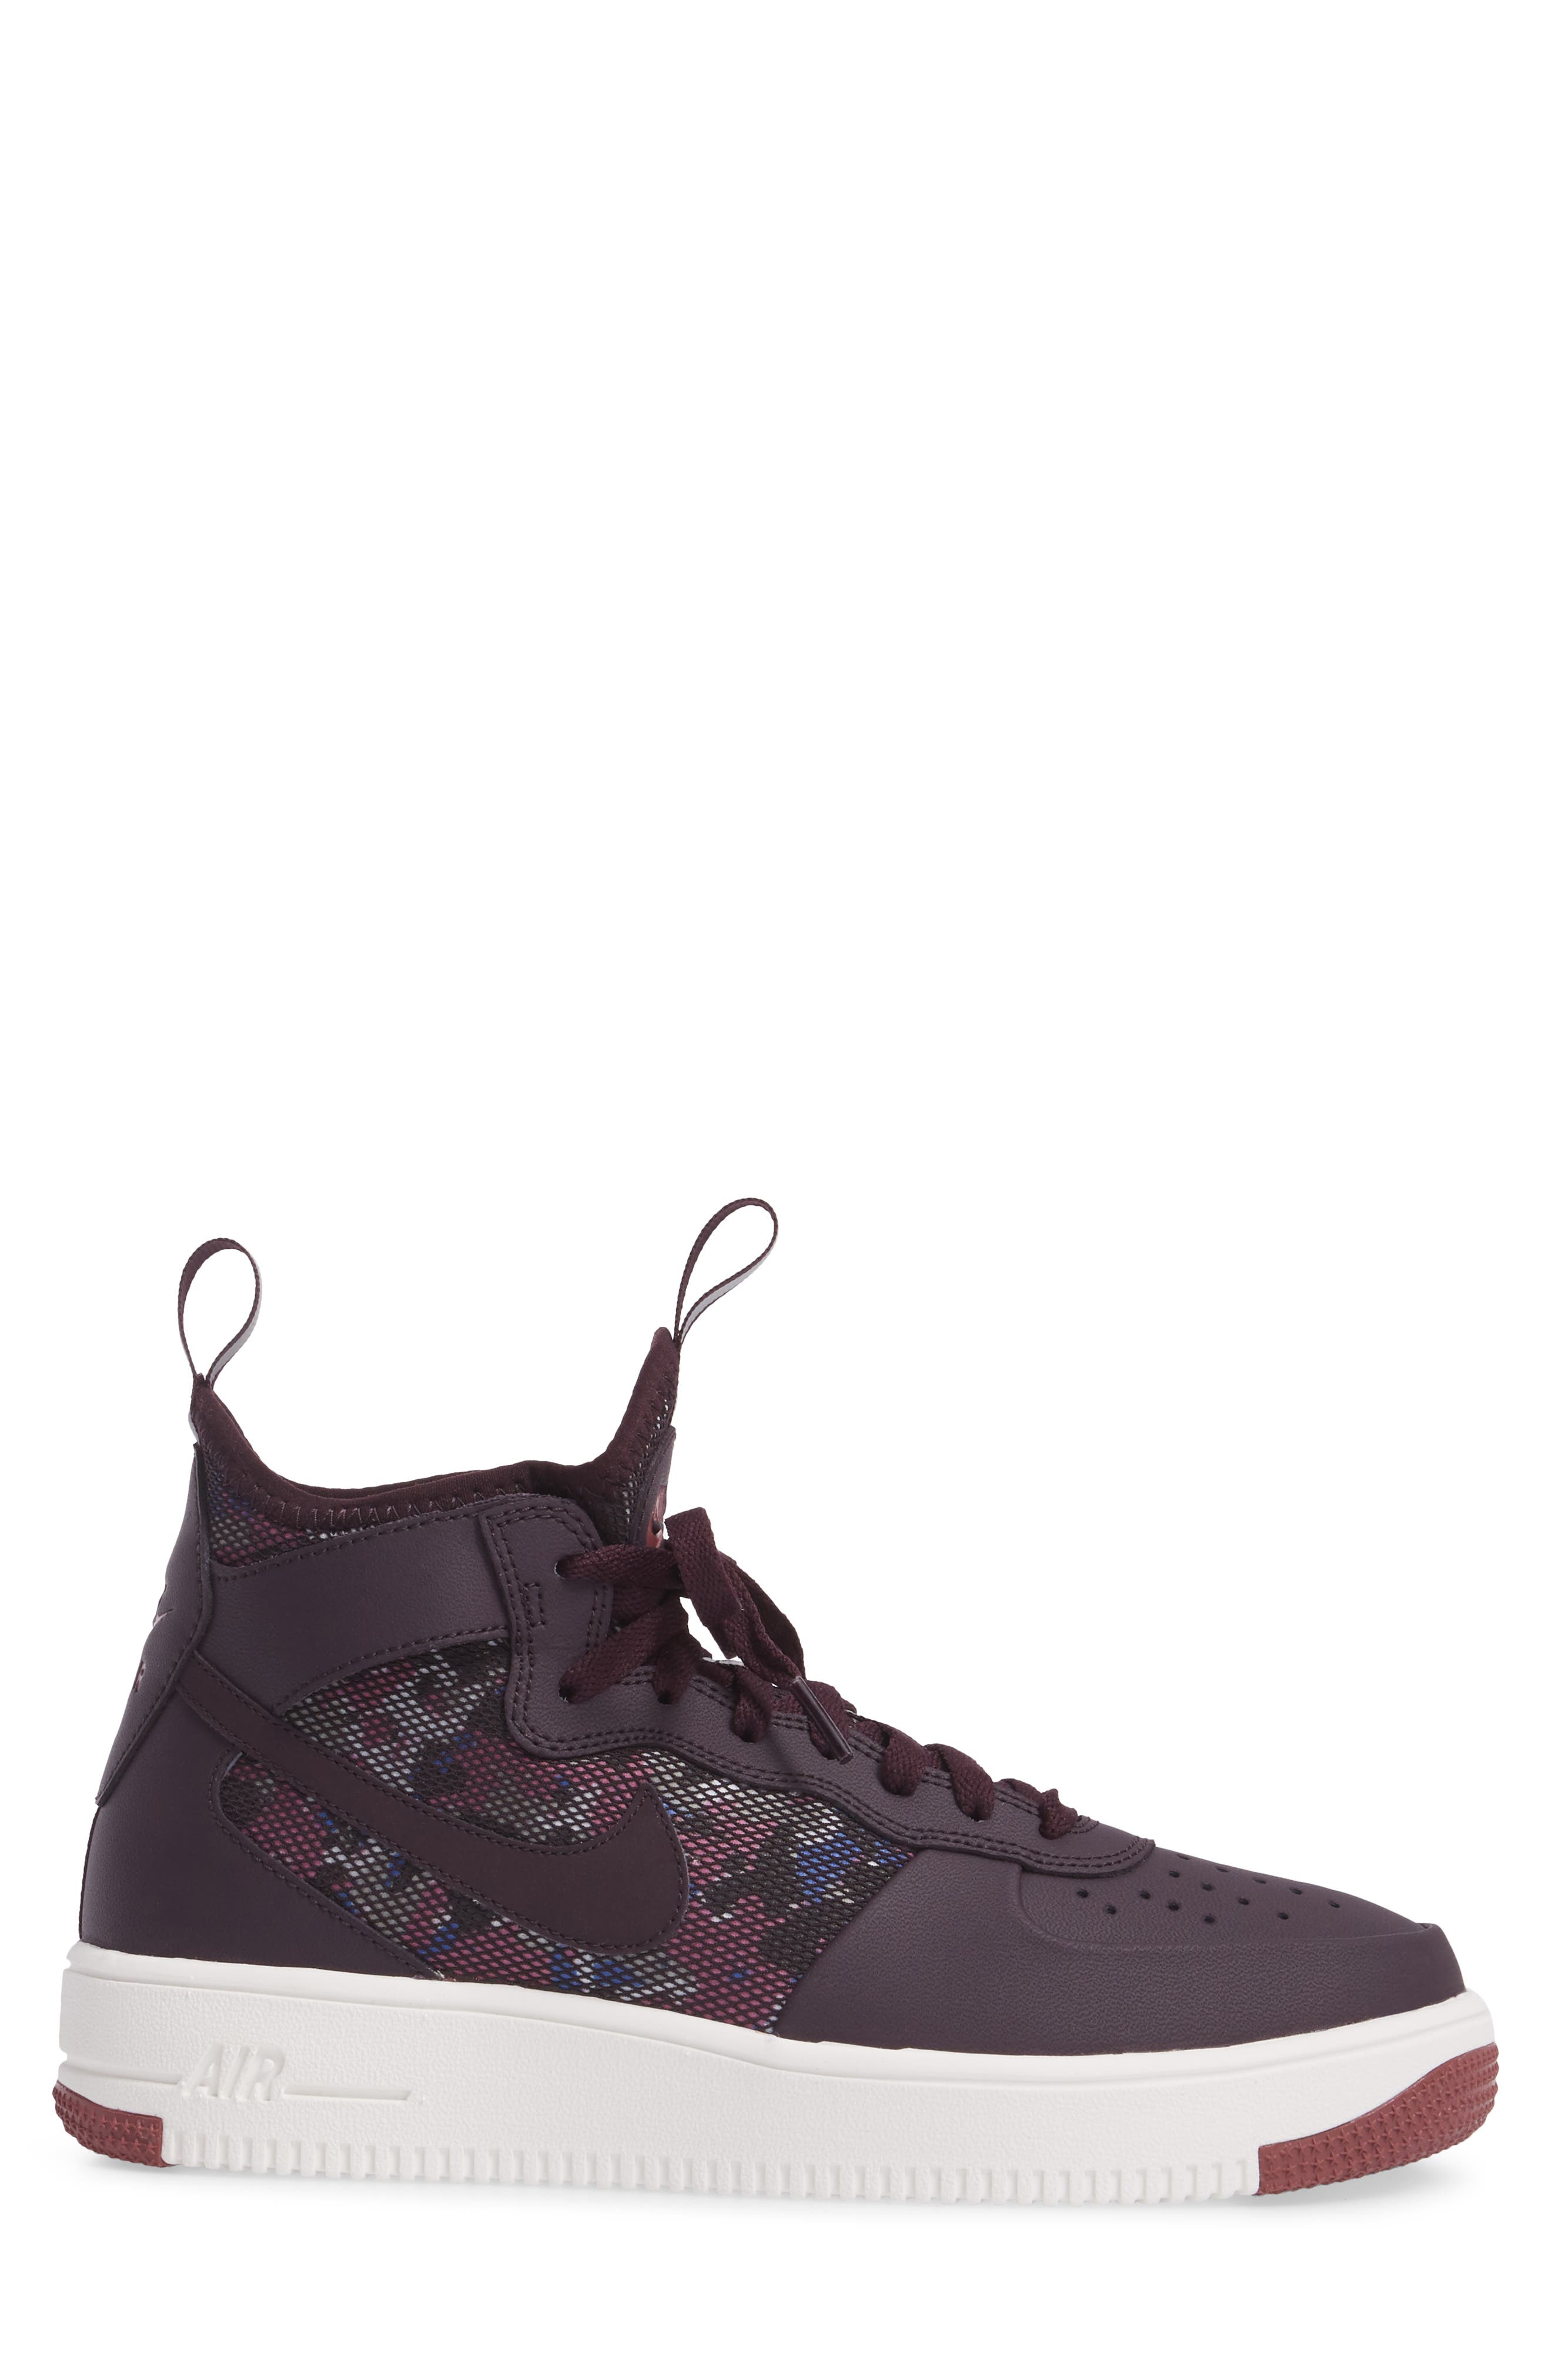 Air Force 1 Ultraforce Mid Sneaker,                             Alternate thumbnail 3, color,                             Port Wine/ Summit White